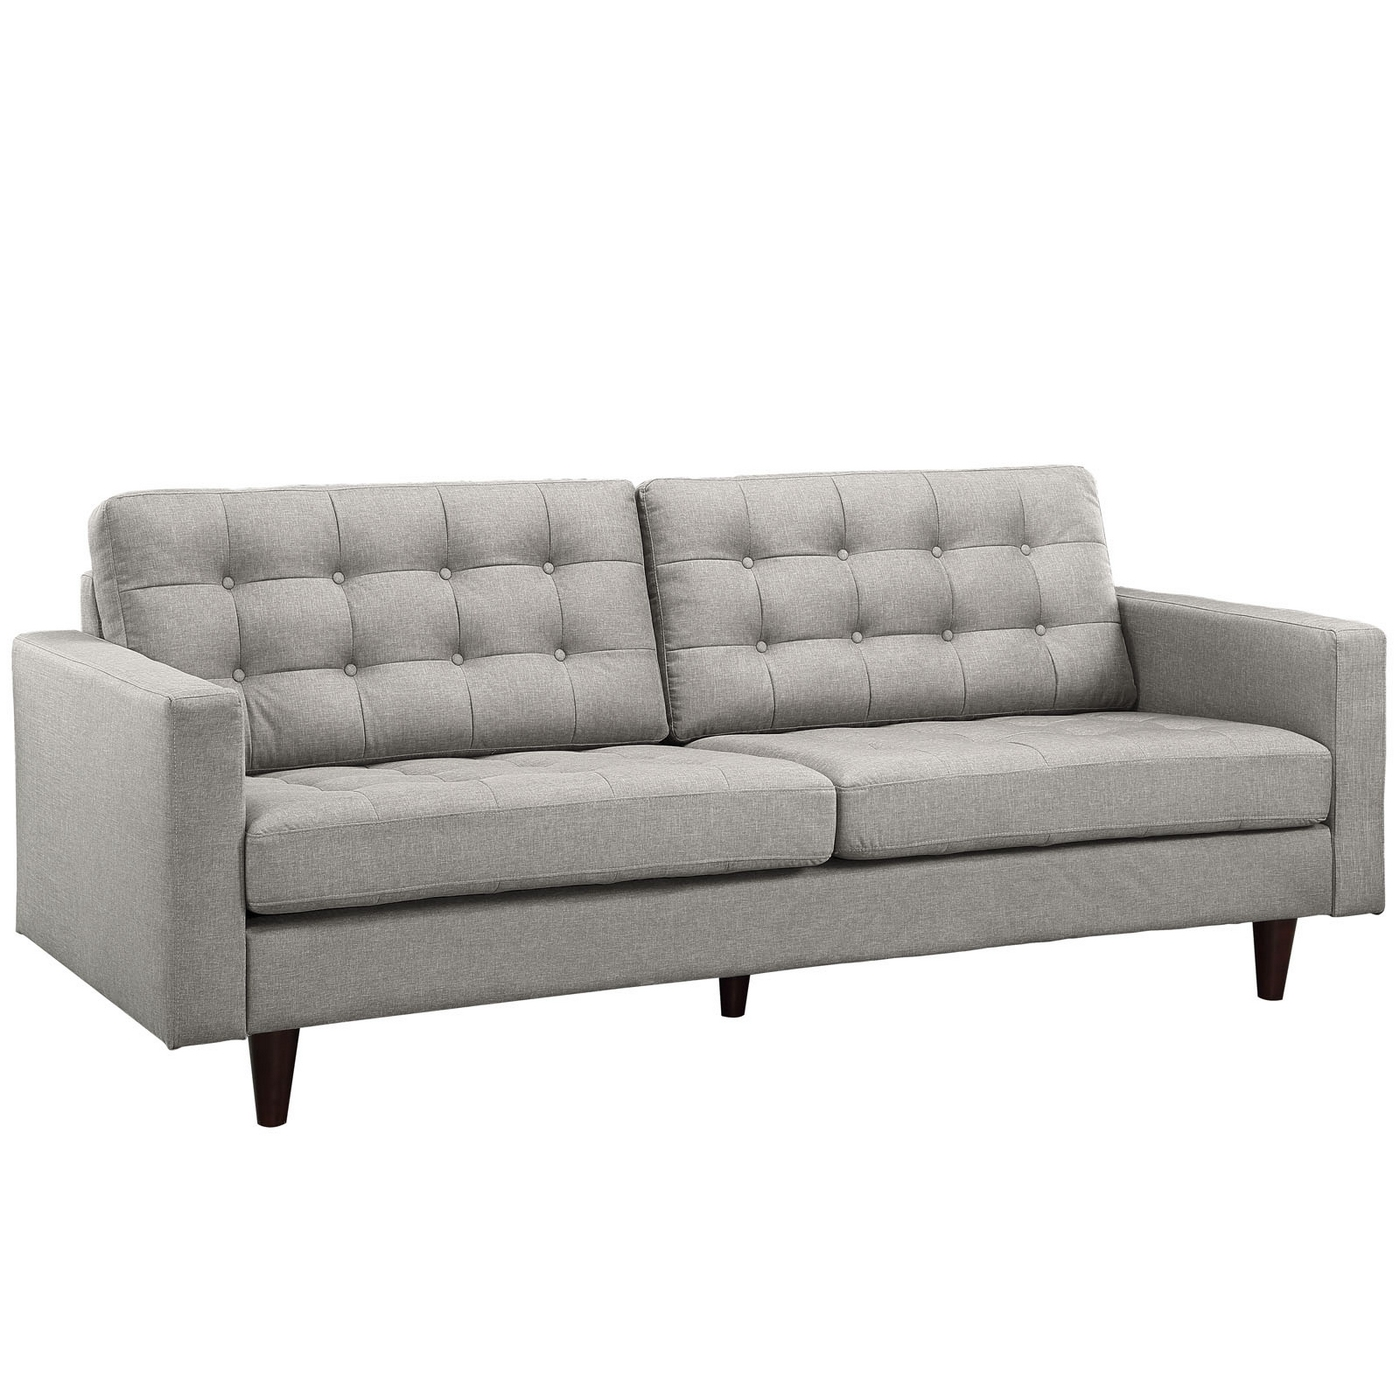 mid century modern light gray sofa avery cheap slipcovers for sofas empress contemporary button tufted